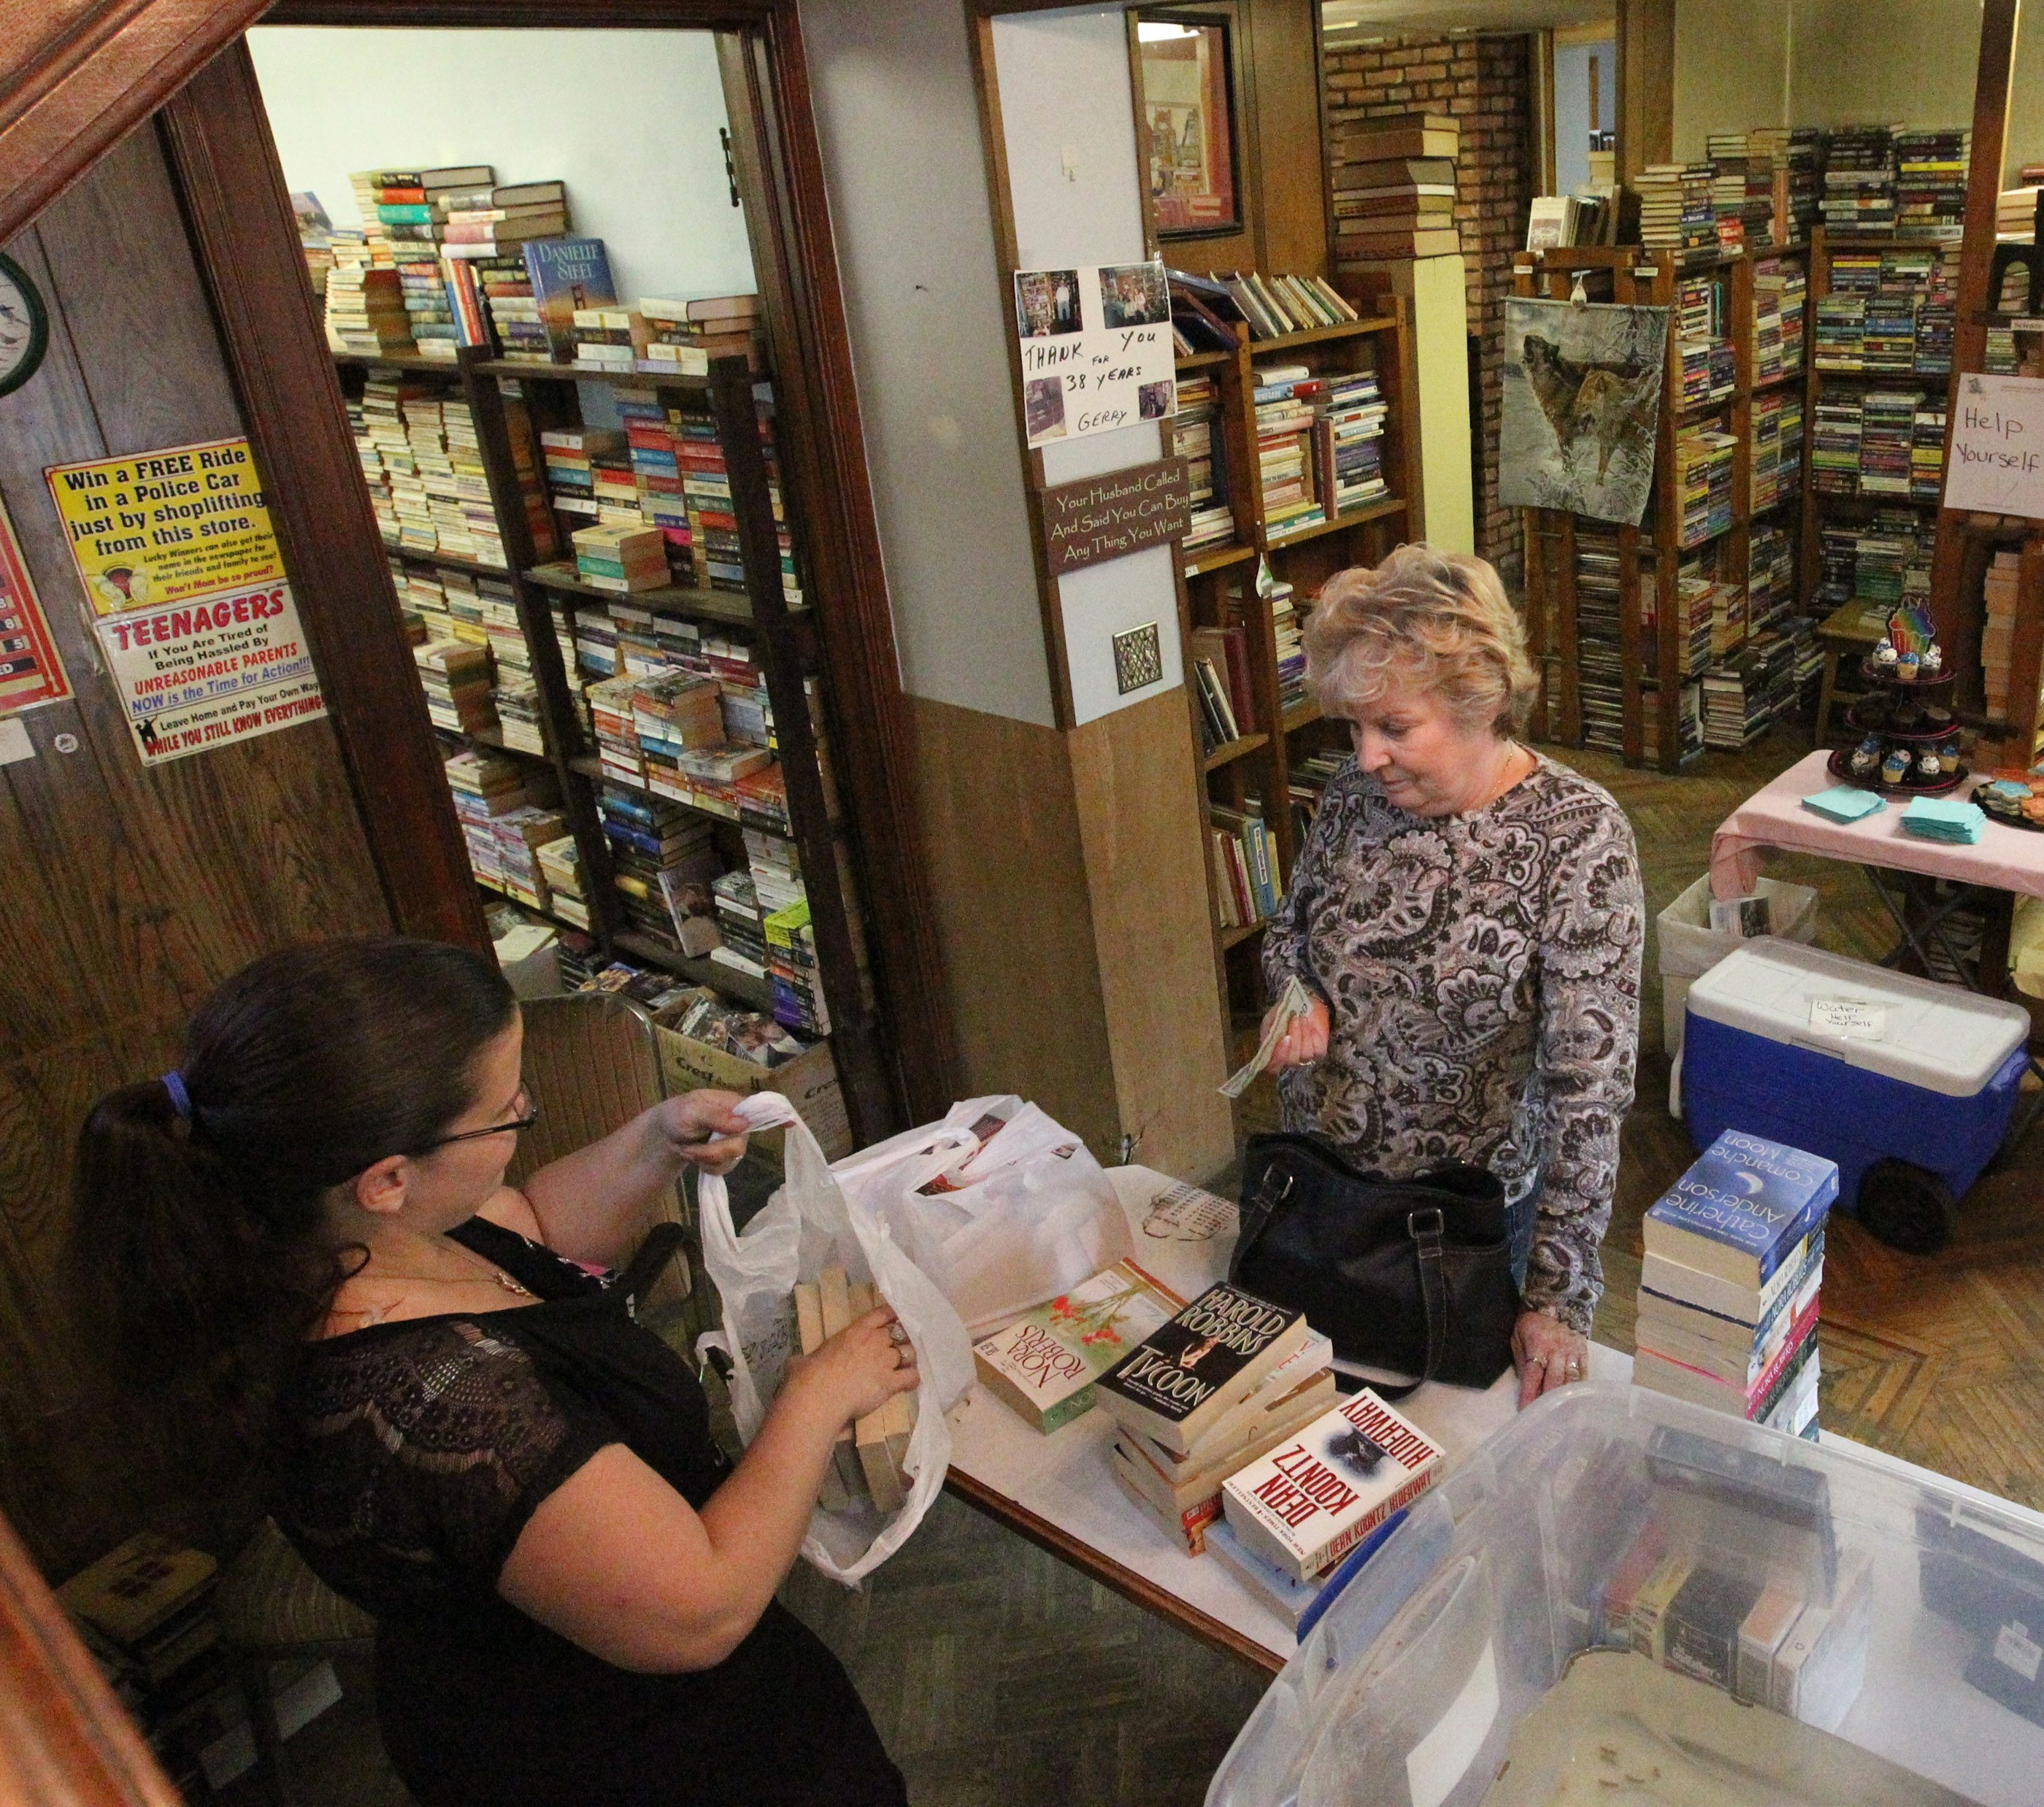 Valerie Savage of Buffalo buys books from  Dee Dee Schneider at the Paperback trading post on 2292 Seneca Street in Buffalo,NY on Saturday, June 14, 2014.  (James P. McCoy/ Buffalo News) Dee Dee Schneider